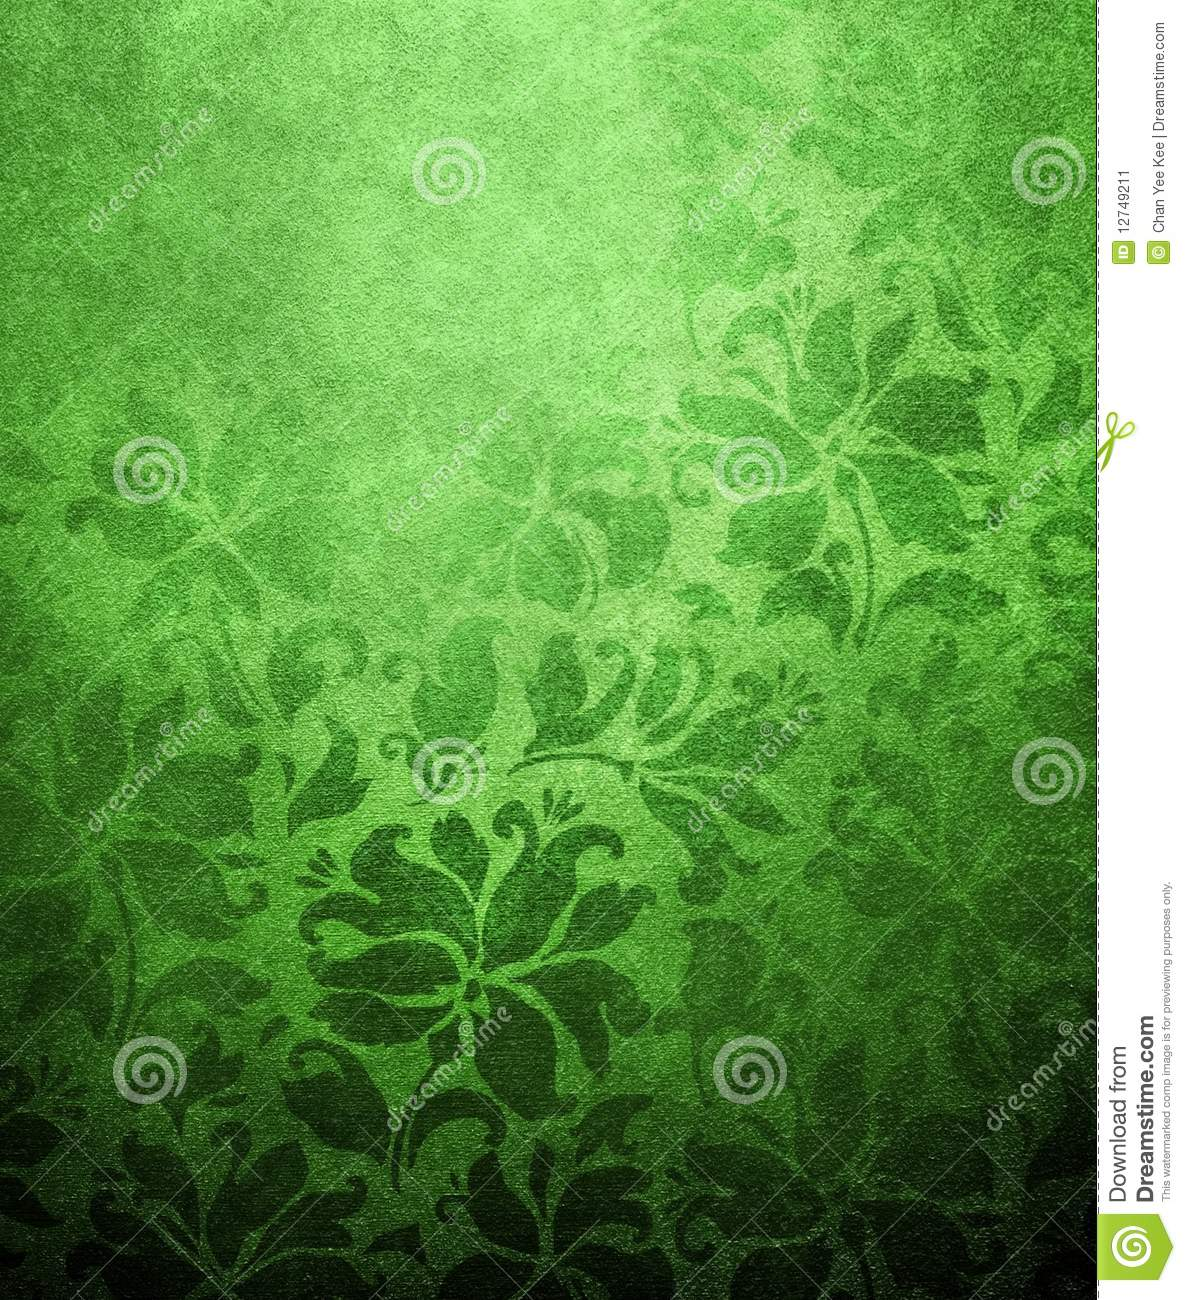 green-floral-wallpaper-12749211 Vintage Letter Background Template on valentine's day printable templates, letter r template, big letter i templates, letter of attestation for employee, letter composition templates, letter banner templates, letter backgrounds for schools, letter s template, santa letter templates, letter d backgrounds, letter in mail, bhg love notes templates, cool letter templates, letter paper background, letter font templates, letter background clip art, letter mailing address, romantic love letter templates, letter j background, block letter templates,